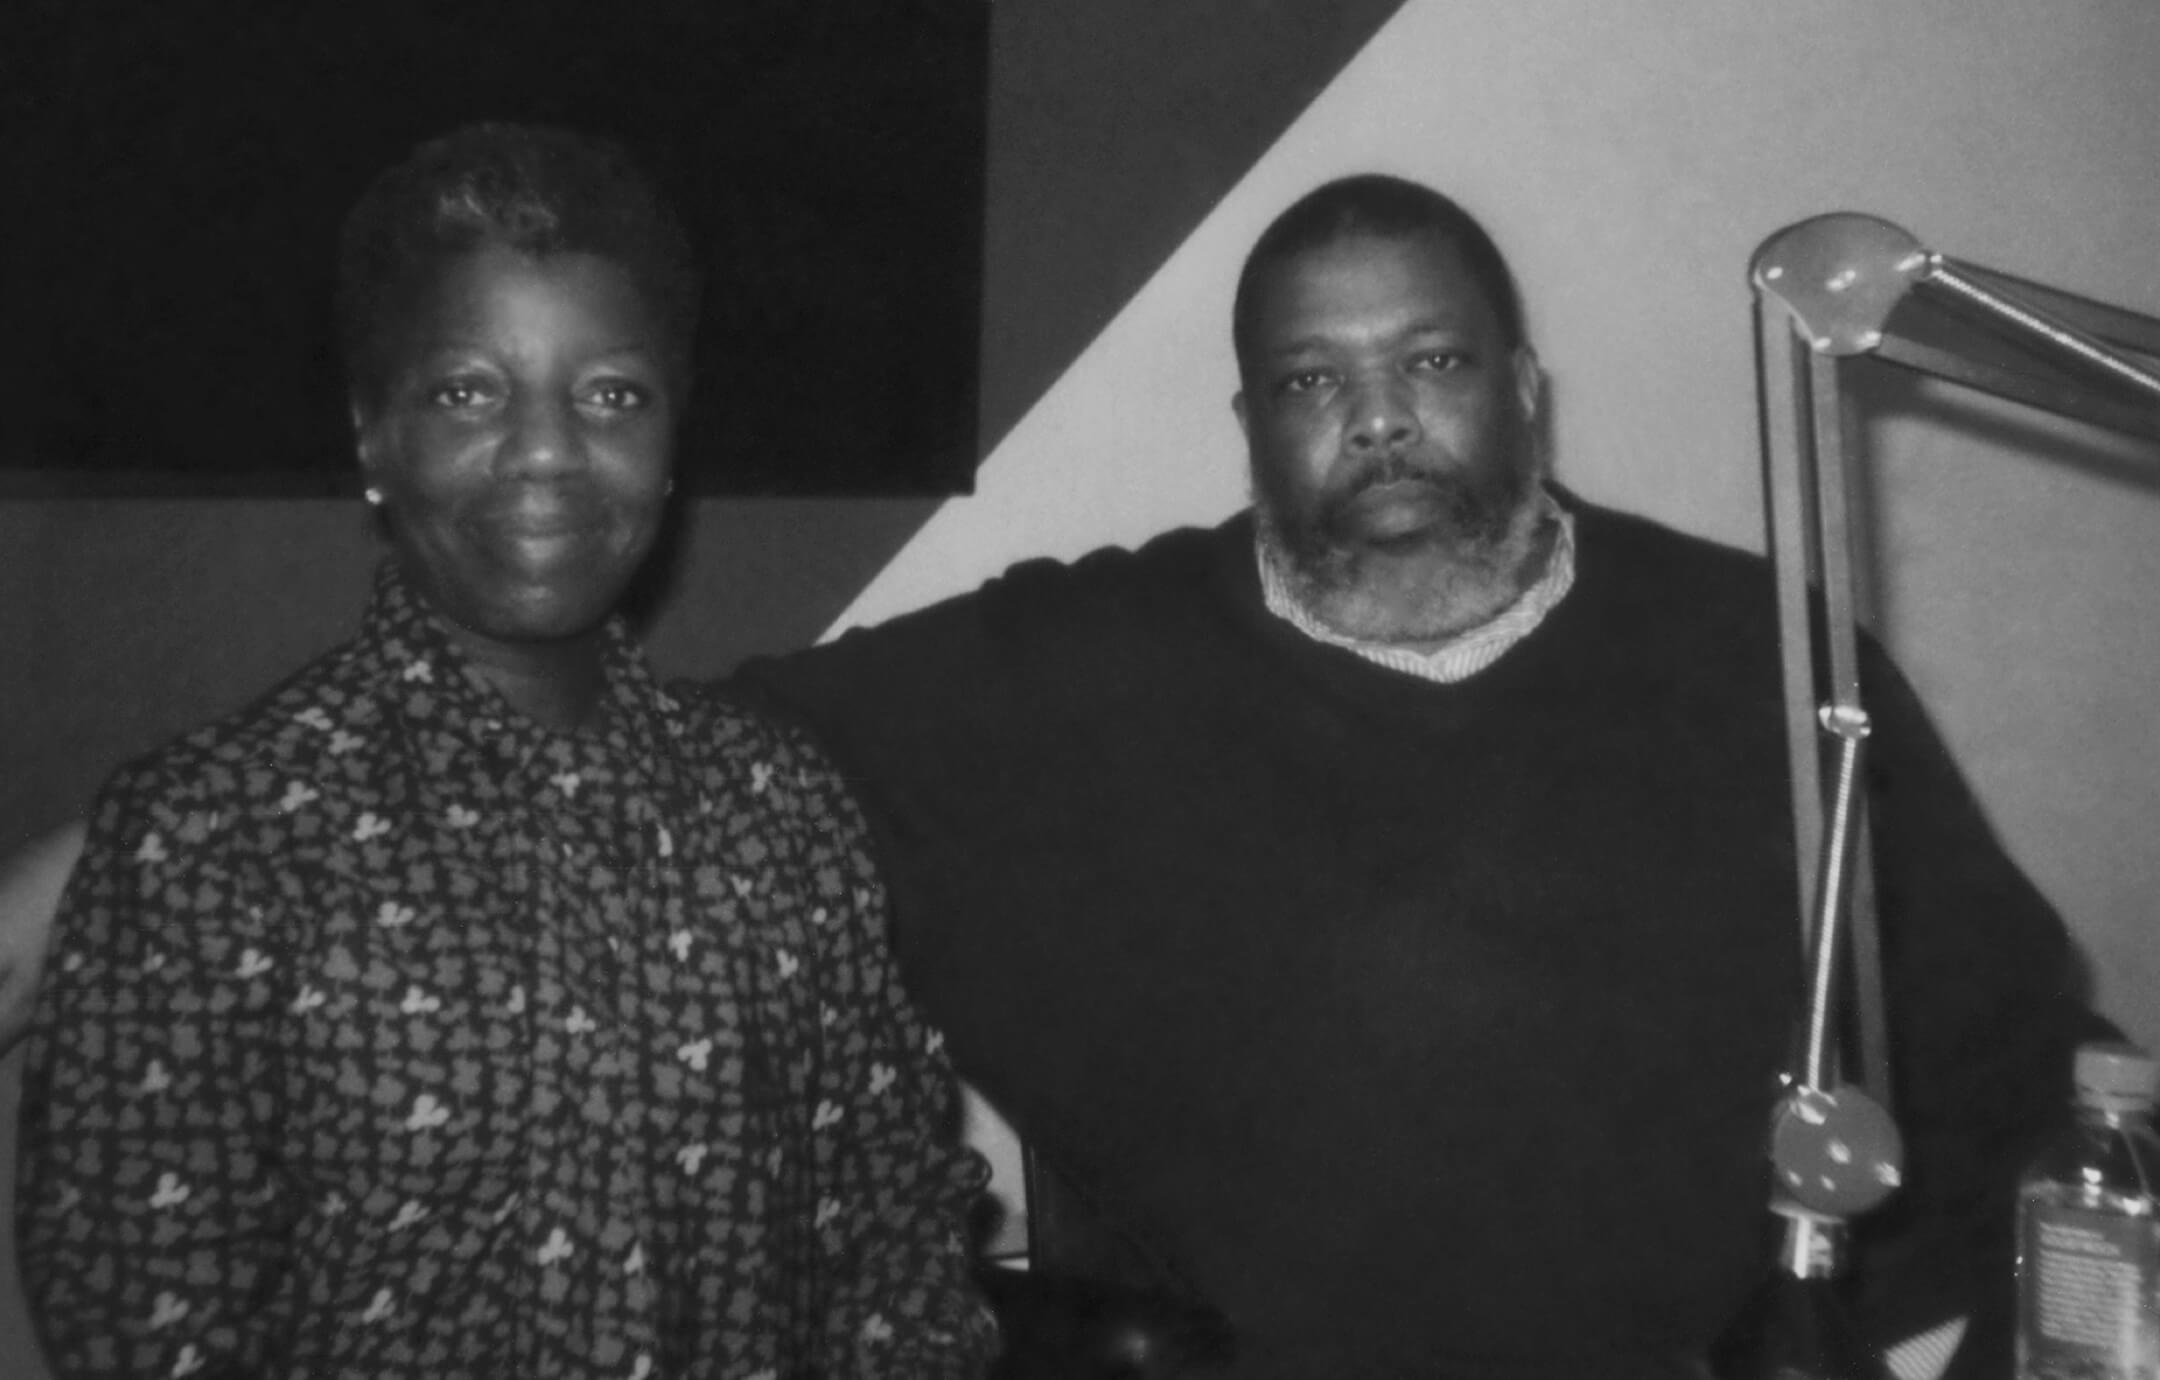 Thelma Golden and Hilton Als in the David Zwirner studio.